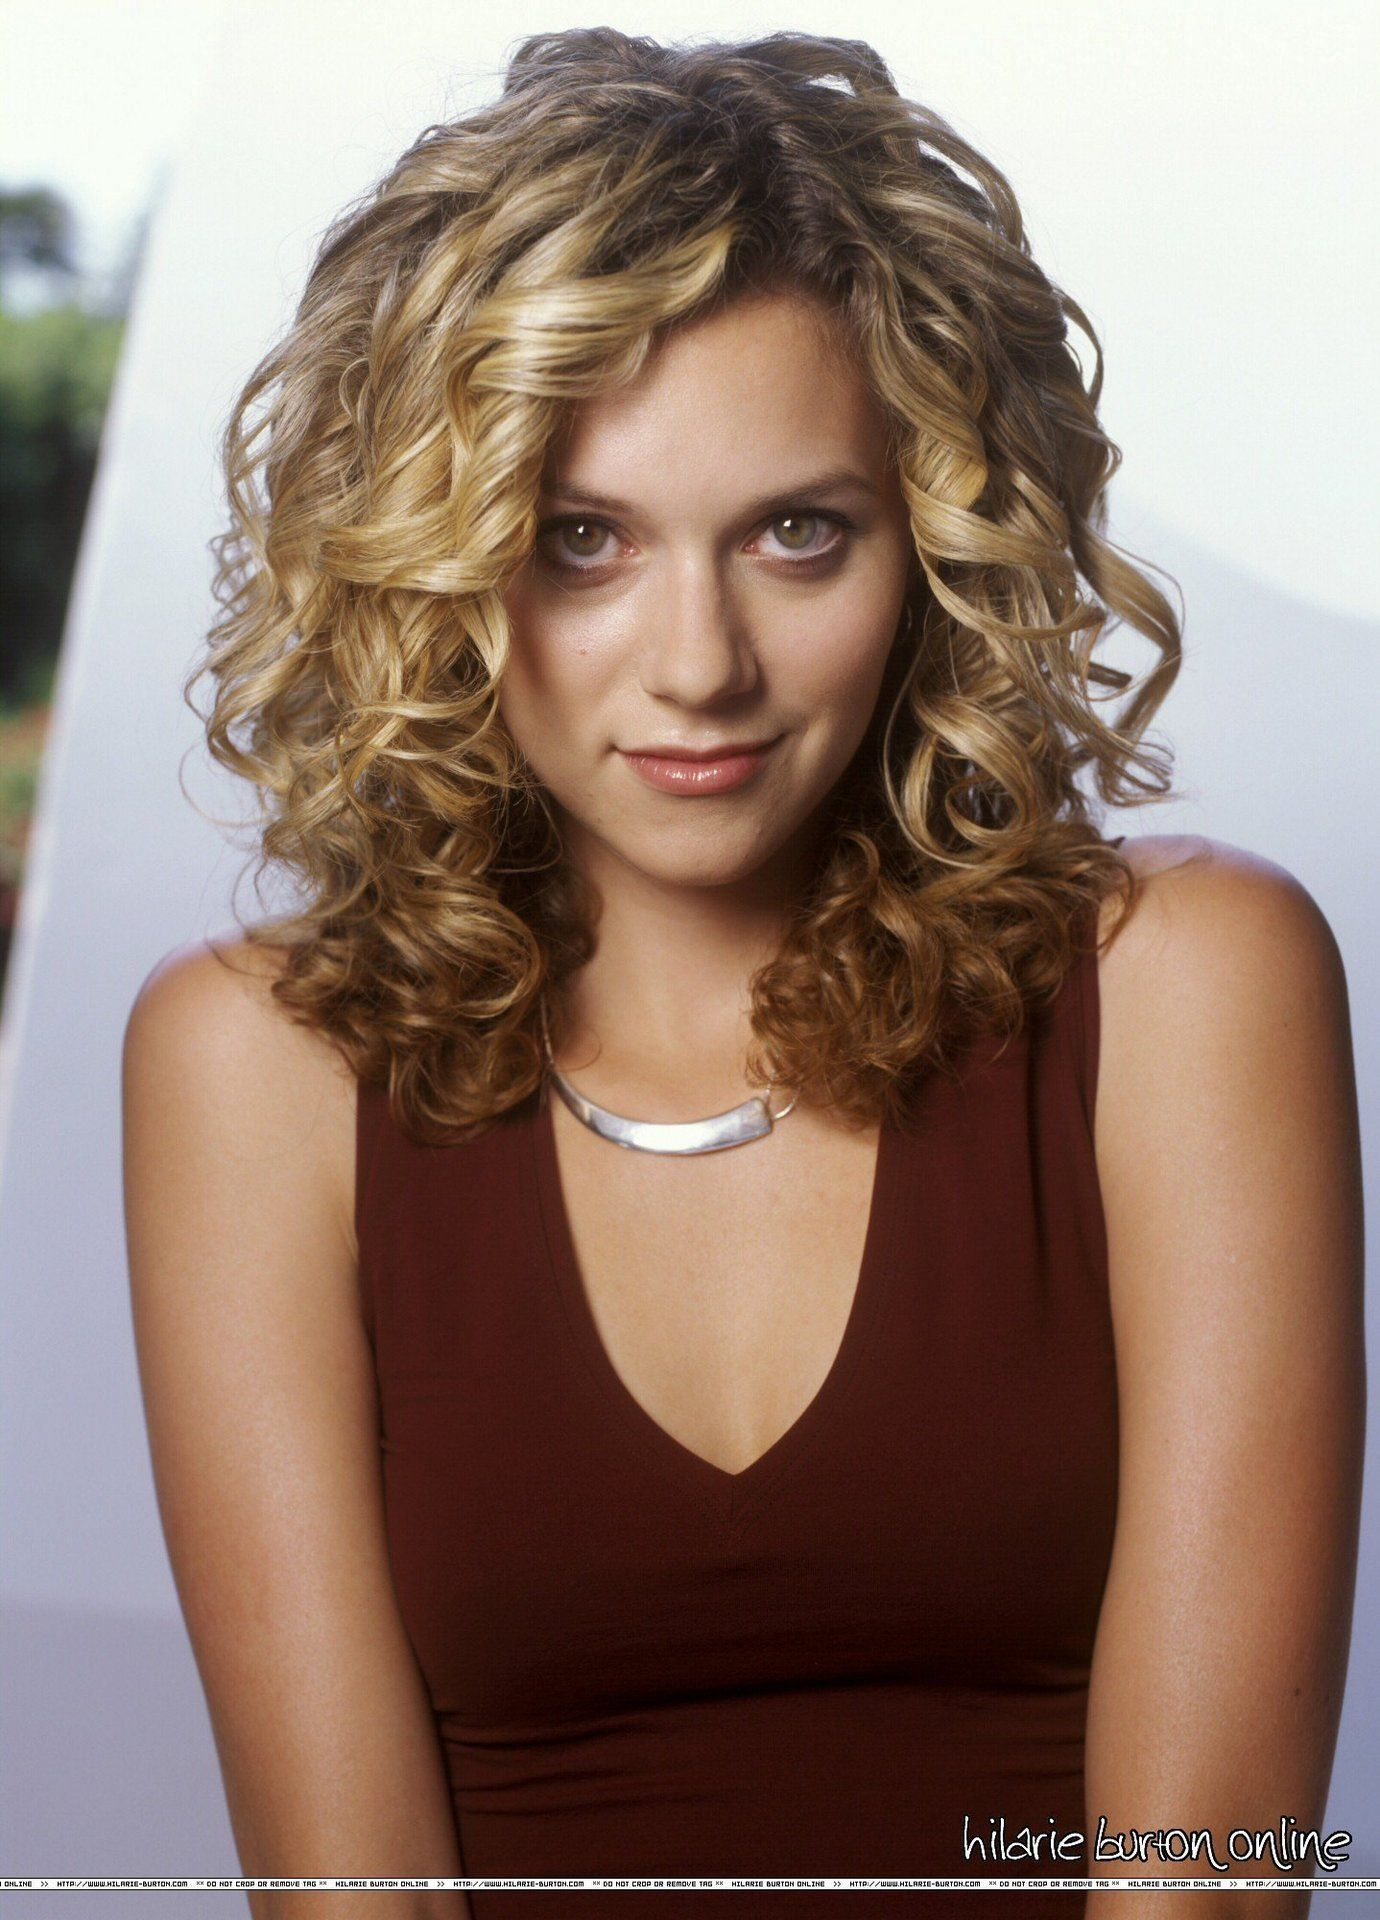 Peyton Sawyer / Hilarie Burton - love the hair def for my next perm job!